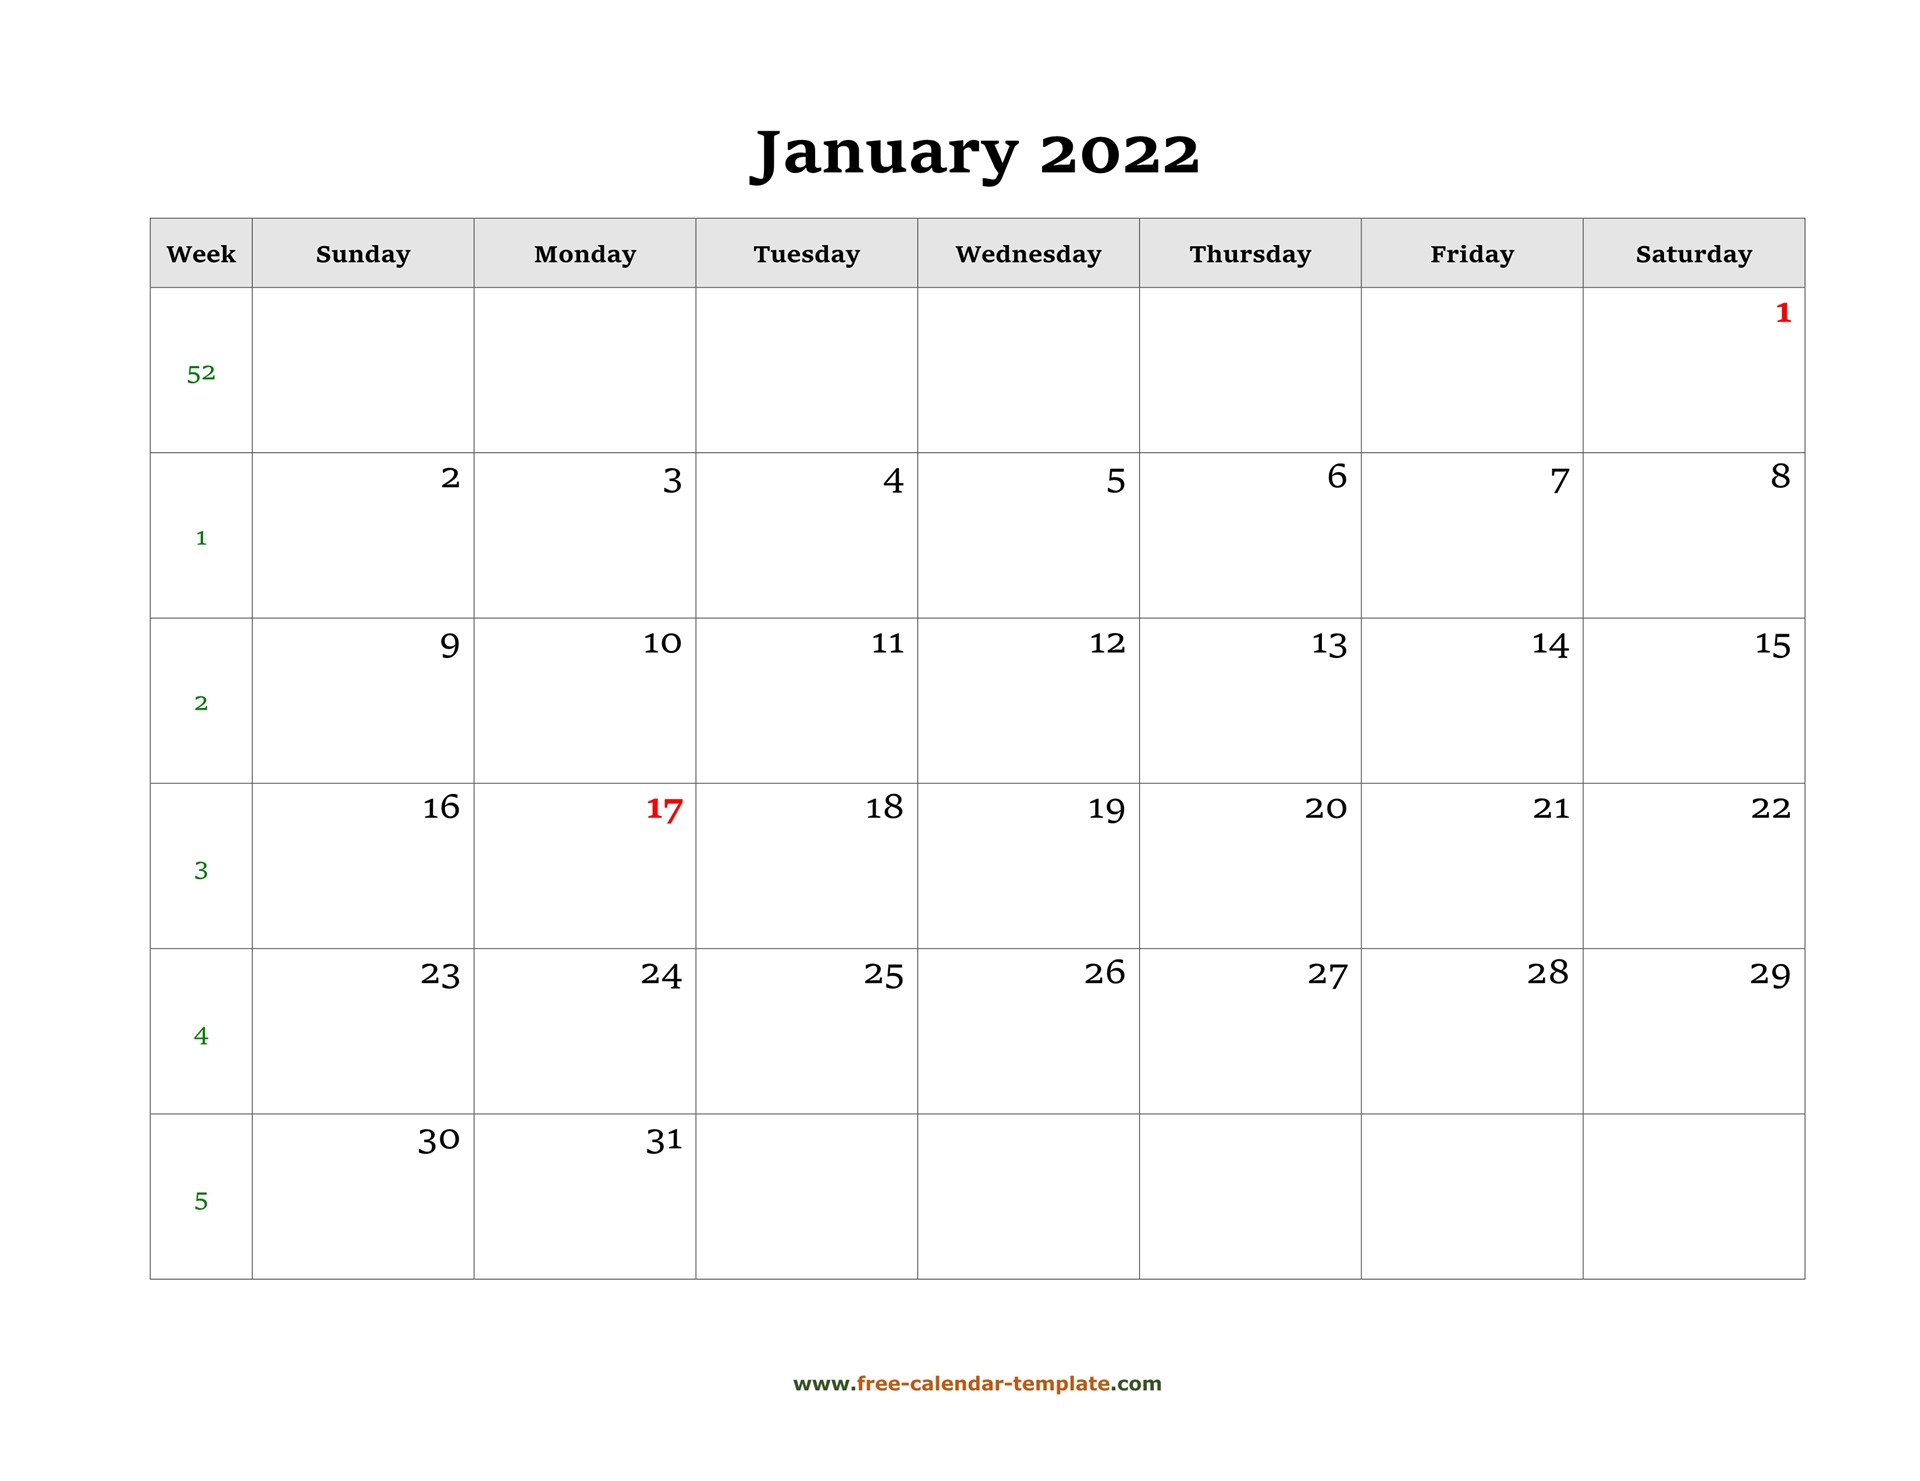 Simple Monthly Calendar 2022 Large Box On Each Day For